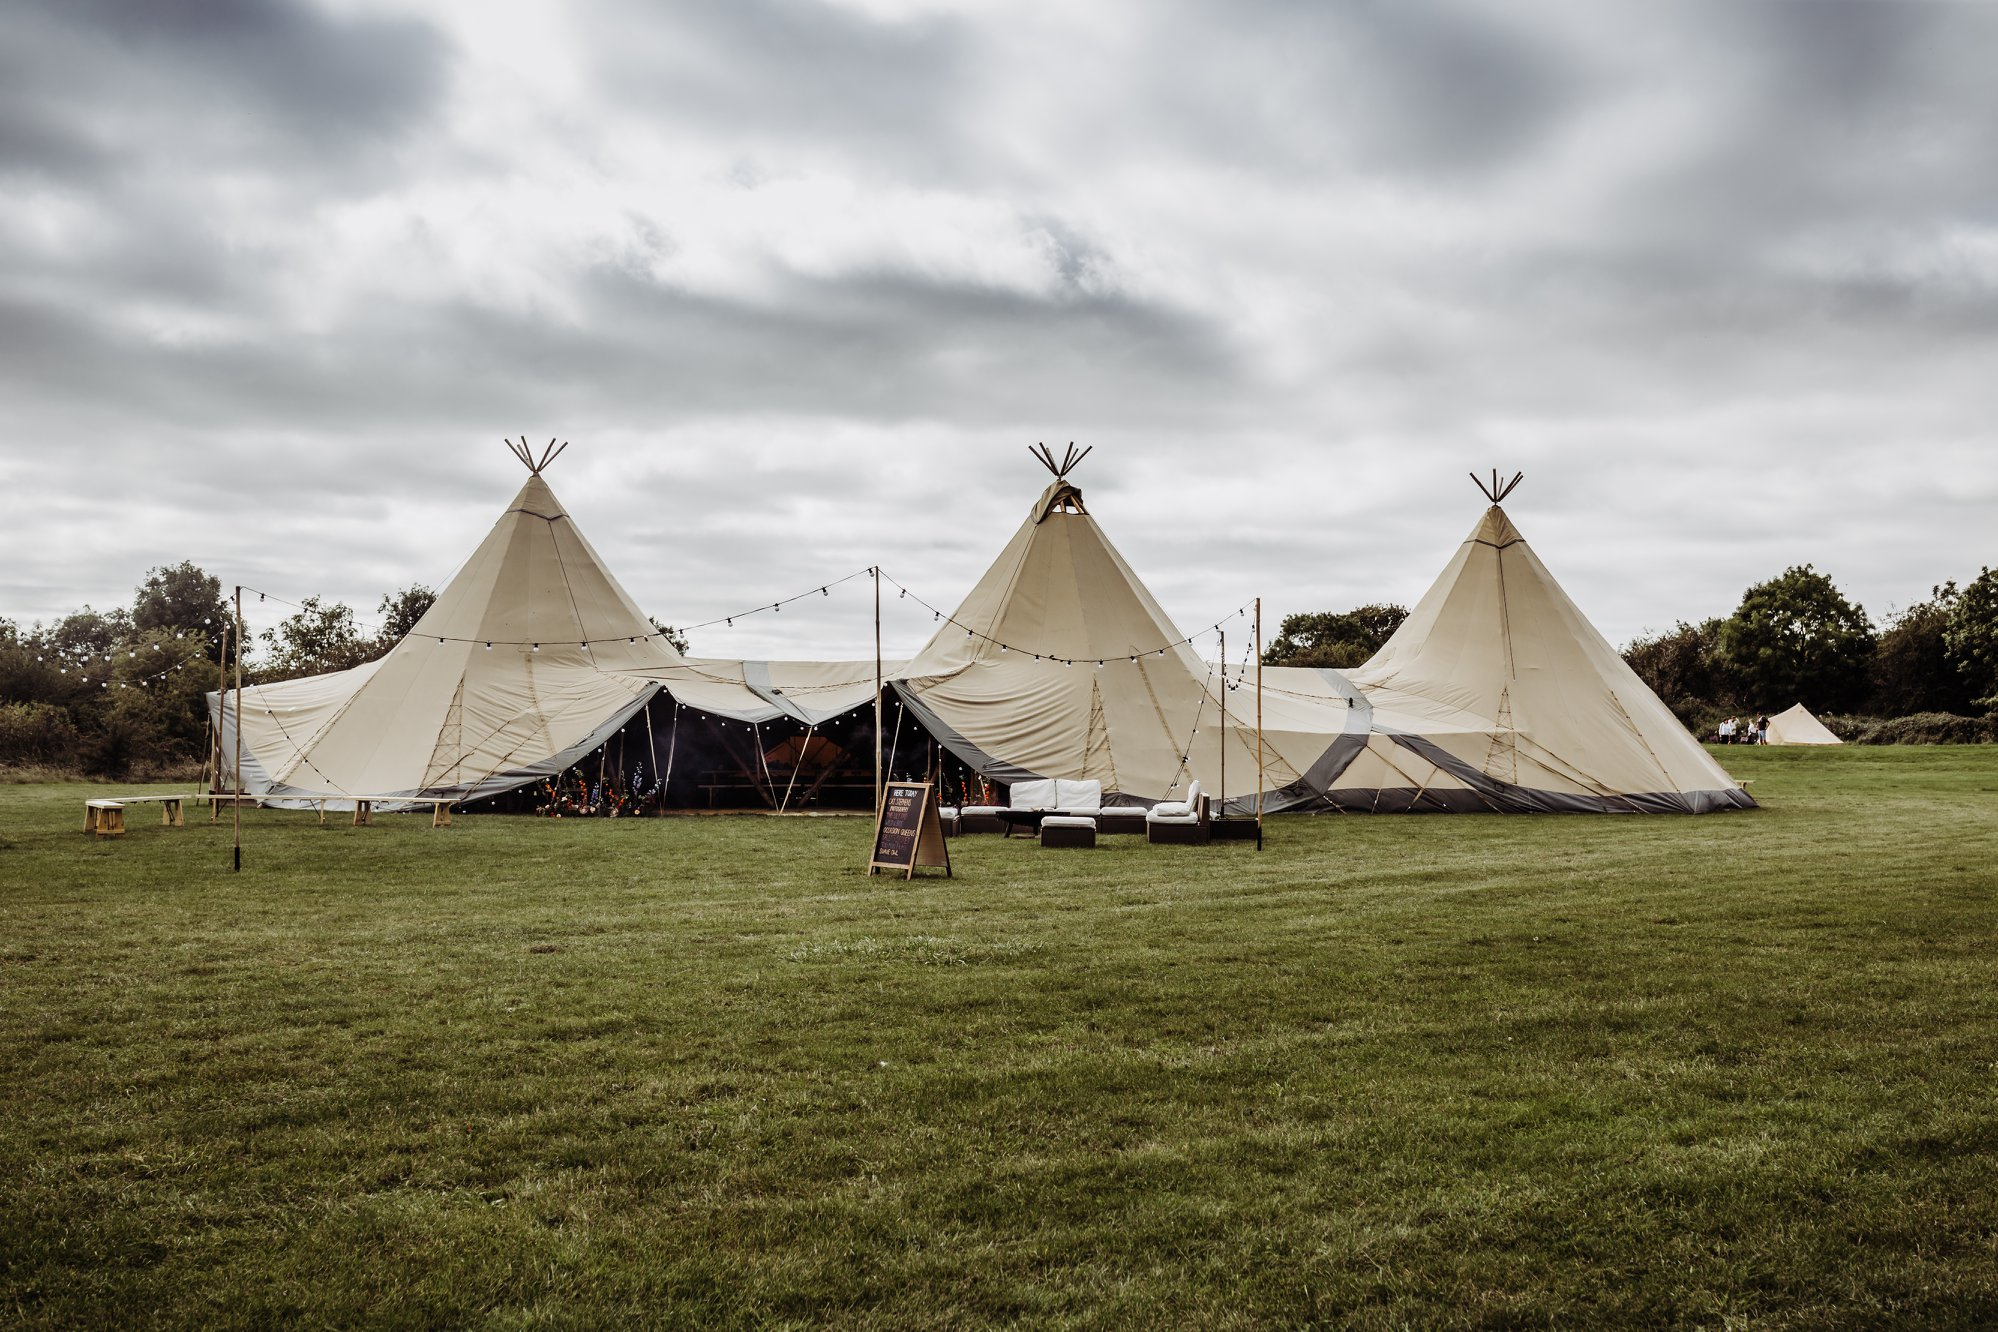 Photo of 3 Giant Tipis set up for a wedding, ideal for 120-180 guests